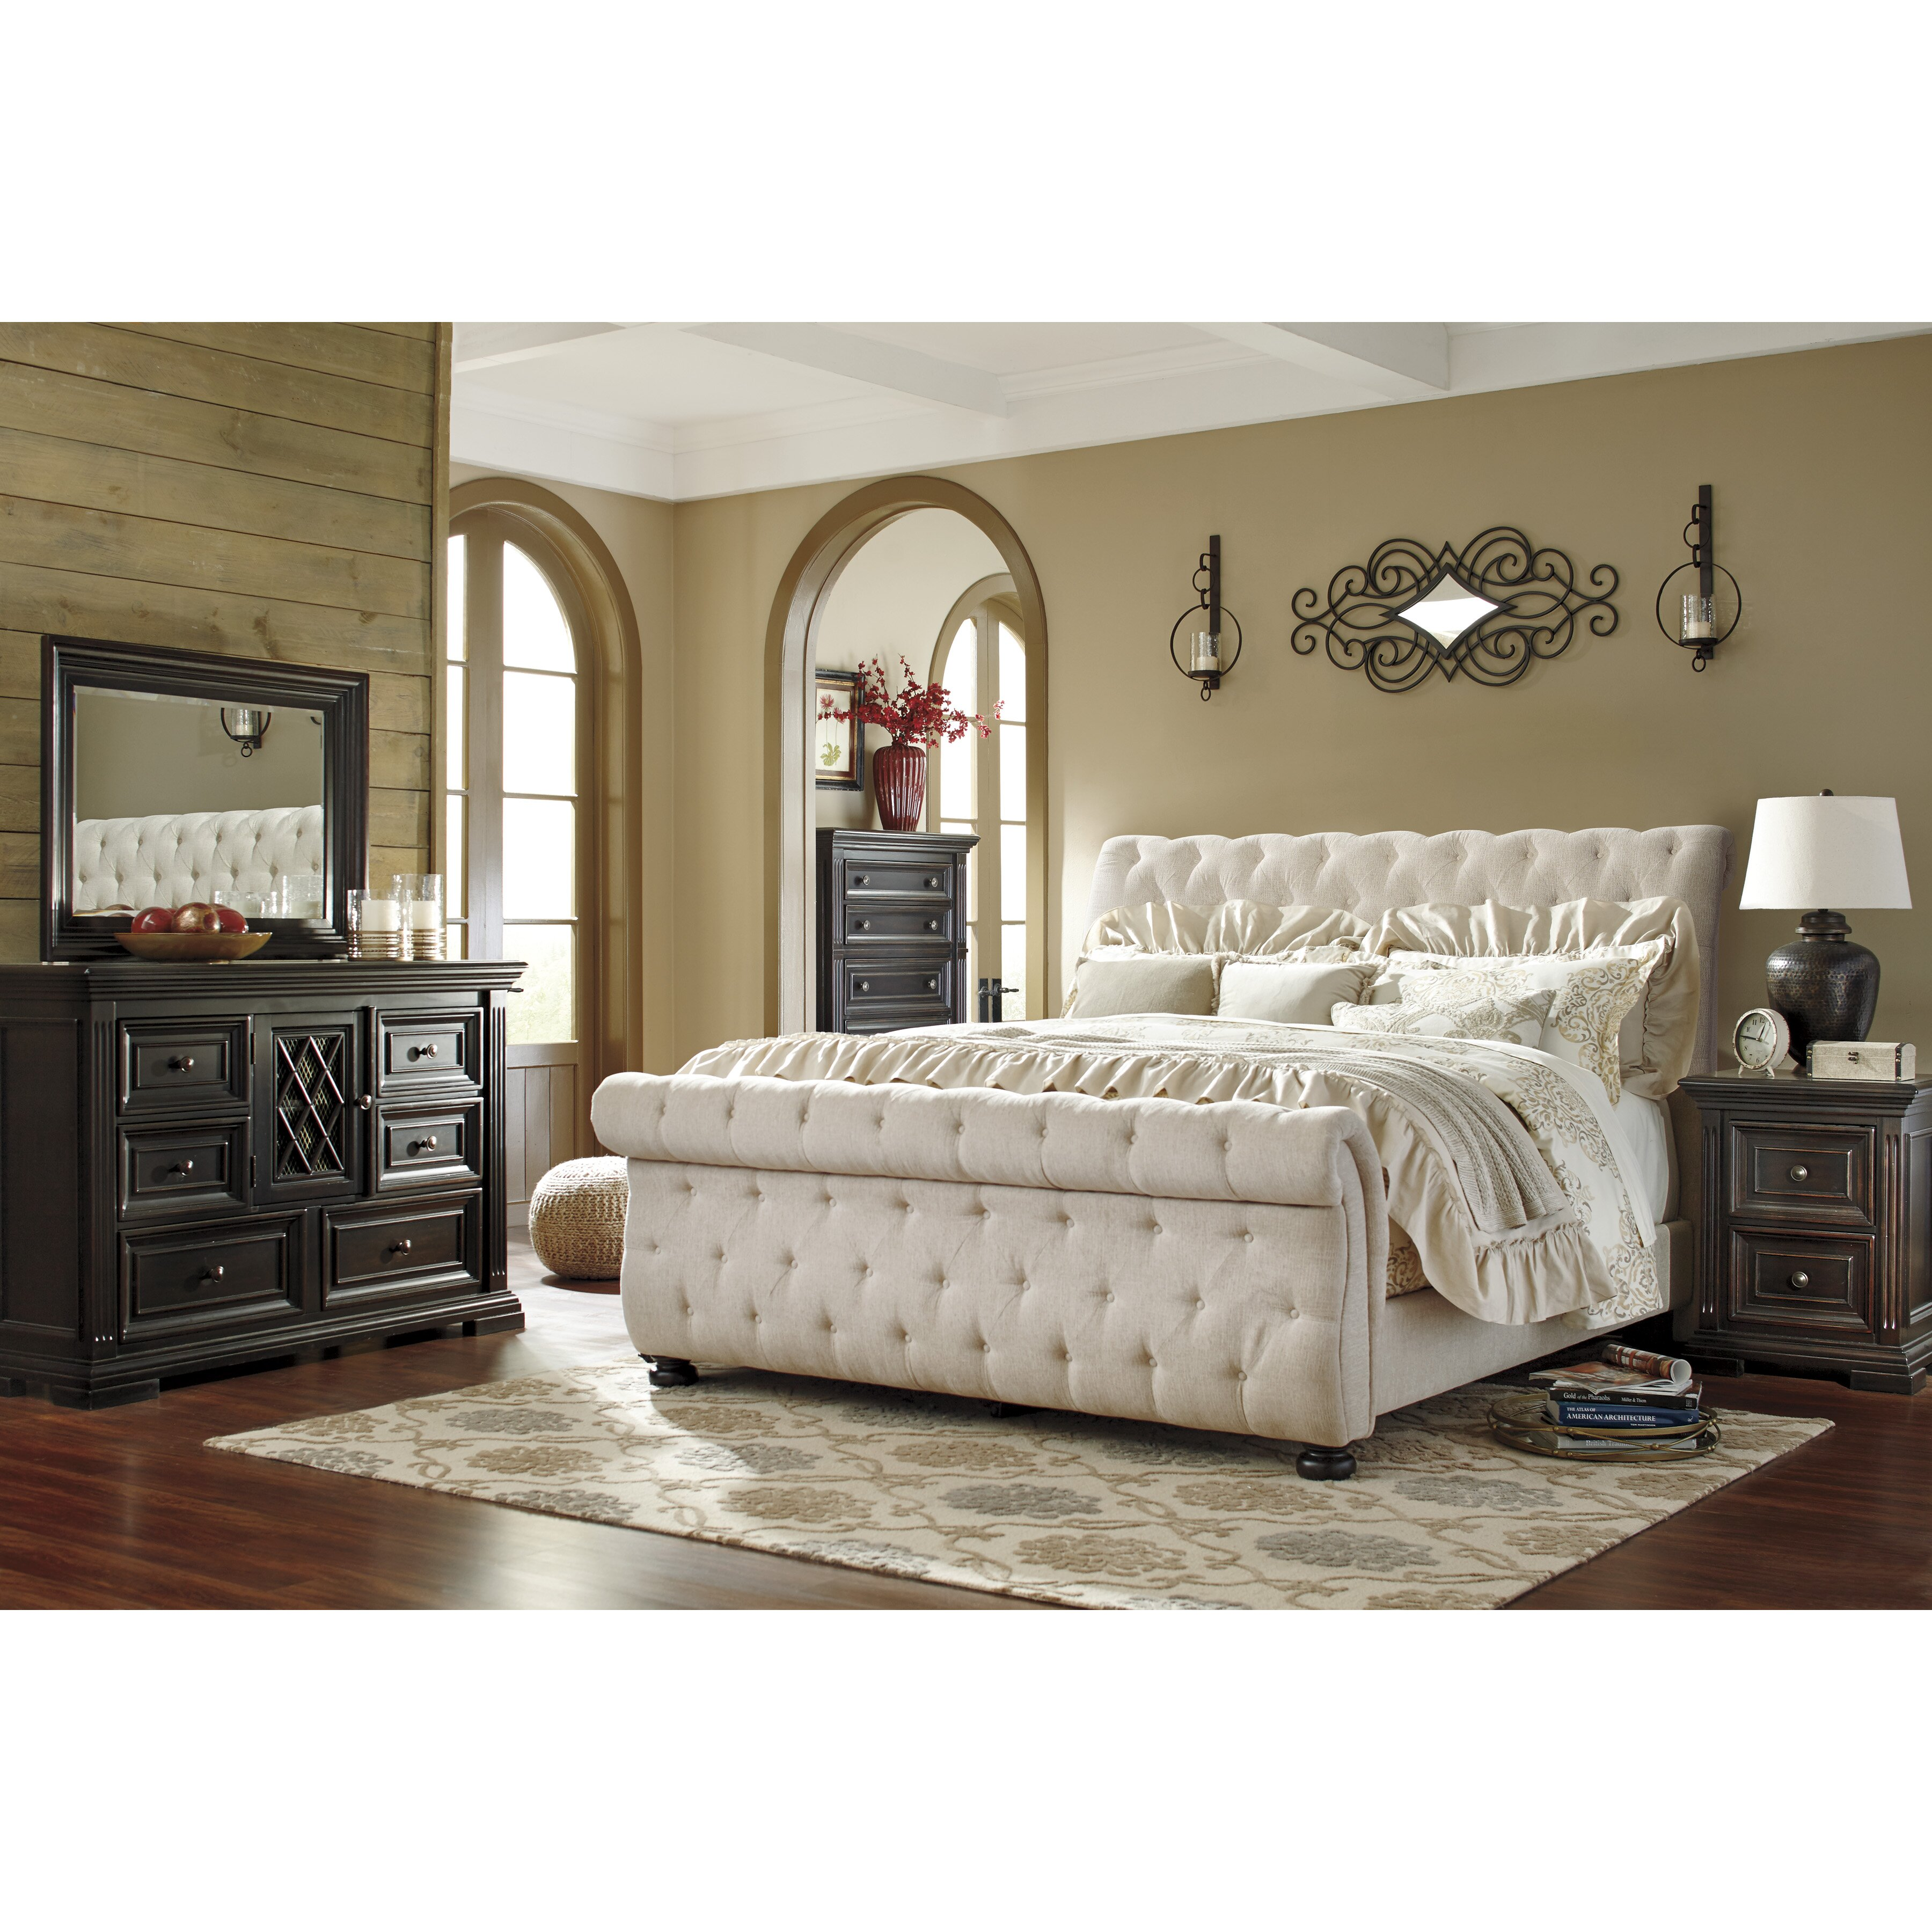 Wayfair Bedroom Furniture: Darby Home Co Althea Upholstered Sleigh Customizable